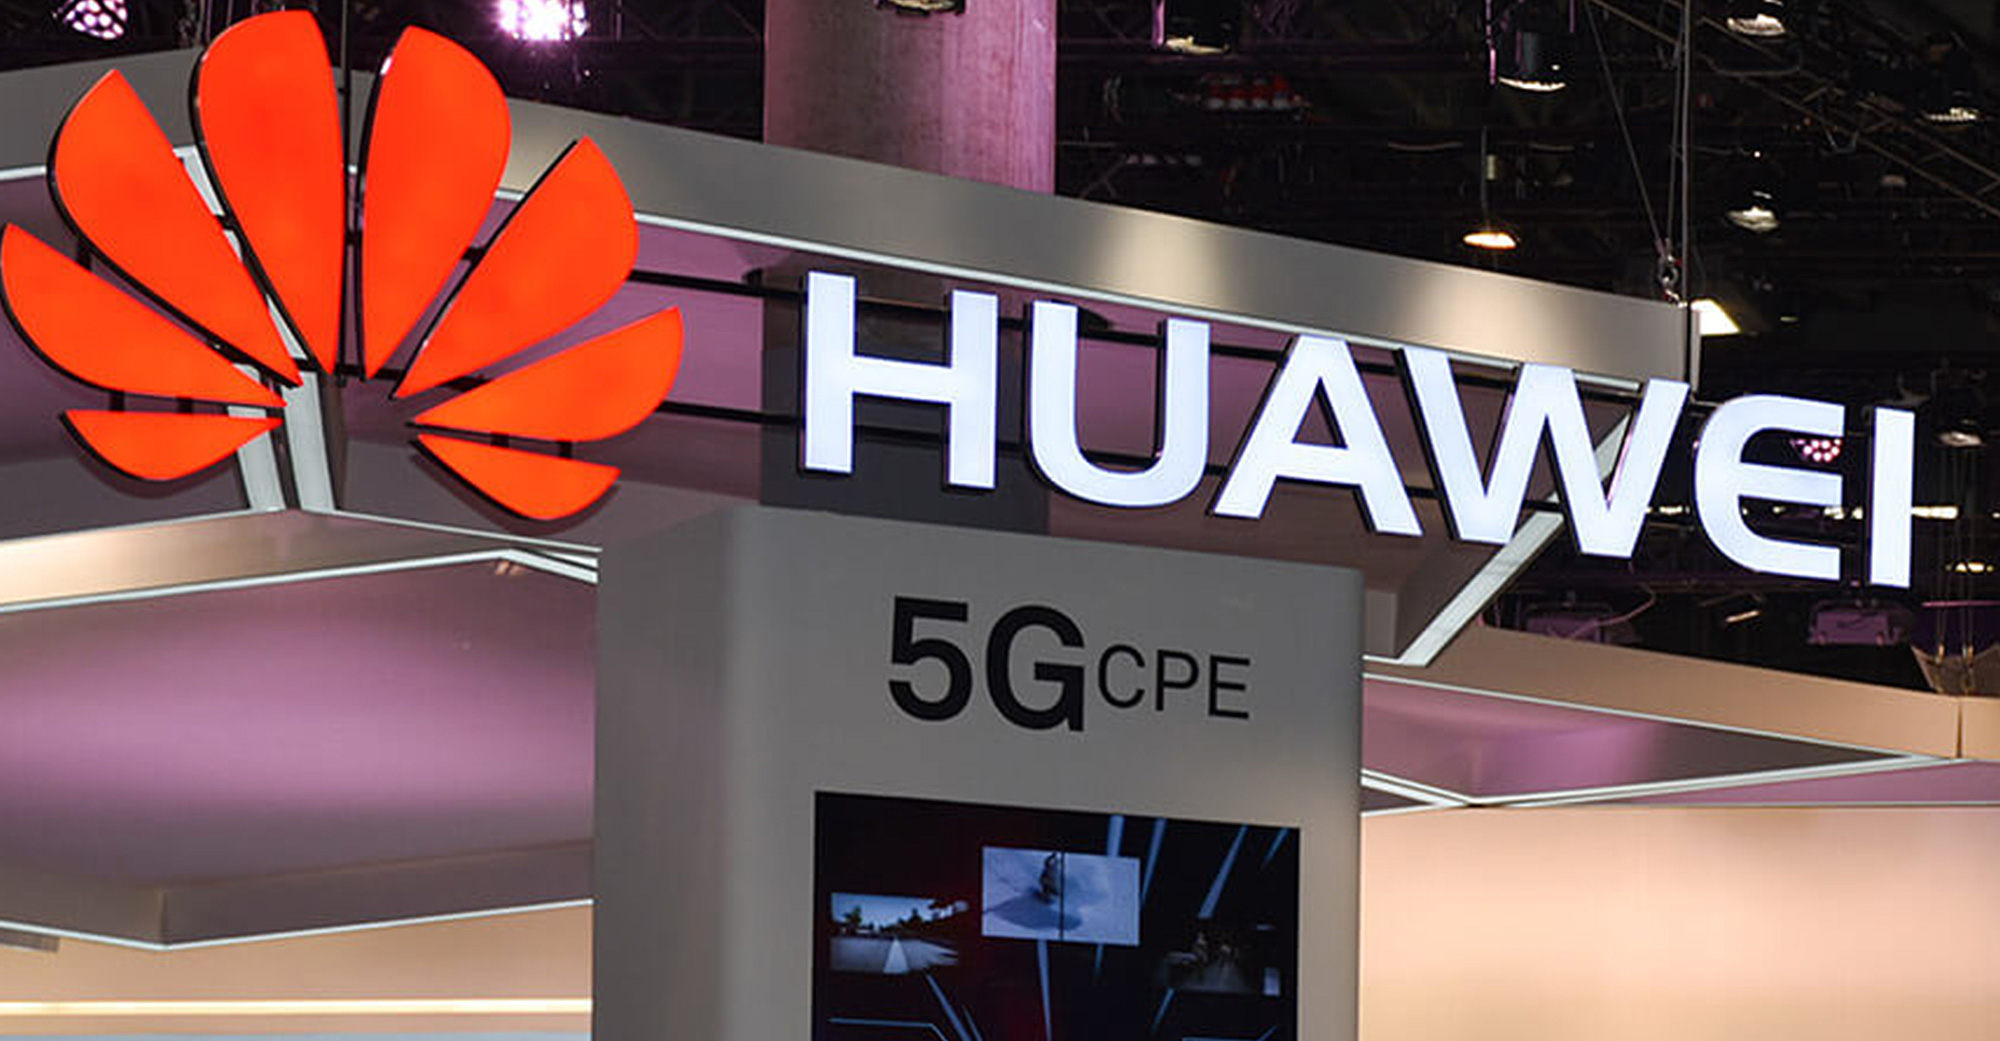 Professor Kevin Curran, Ulster University in an interview on BBC Radio Ulster about whether the prime minister's national security council will grant Huawei a restricted role providing equipment for the UK 5G data infrastructure.